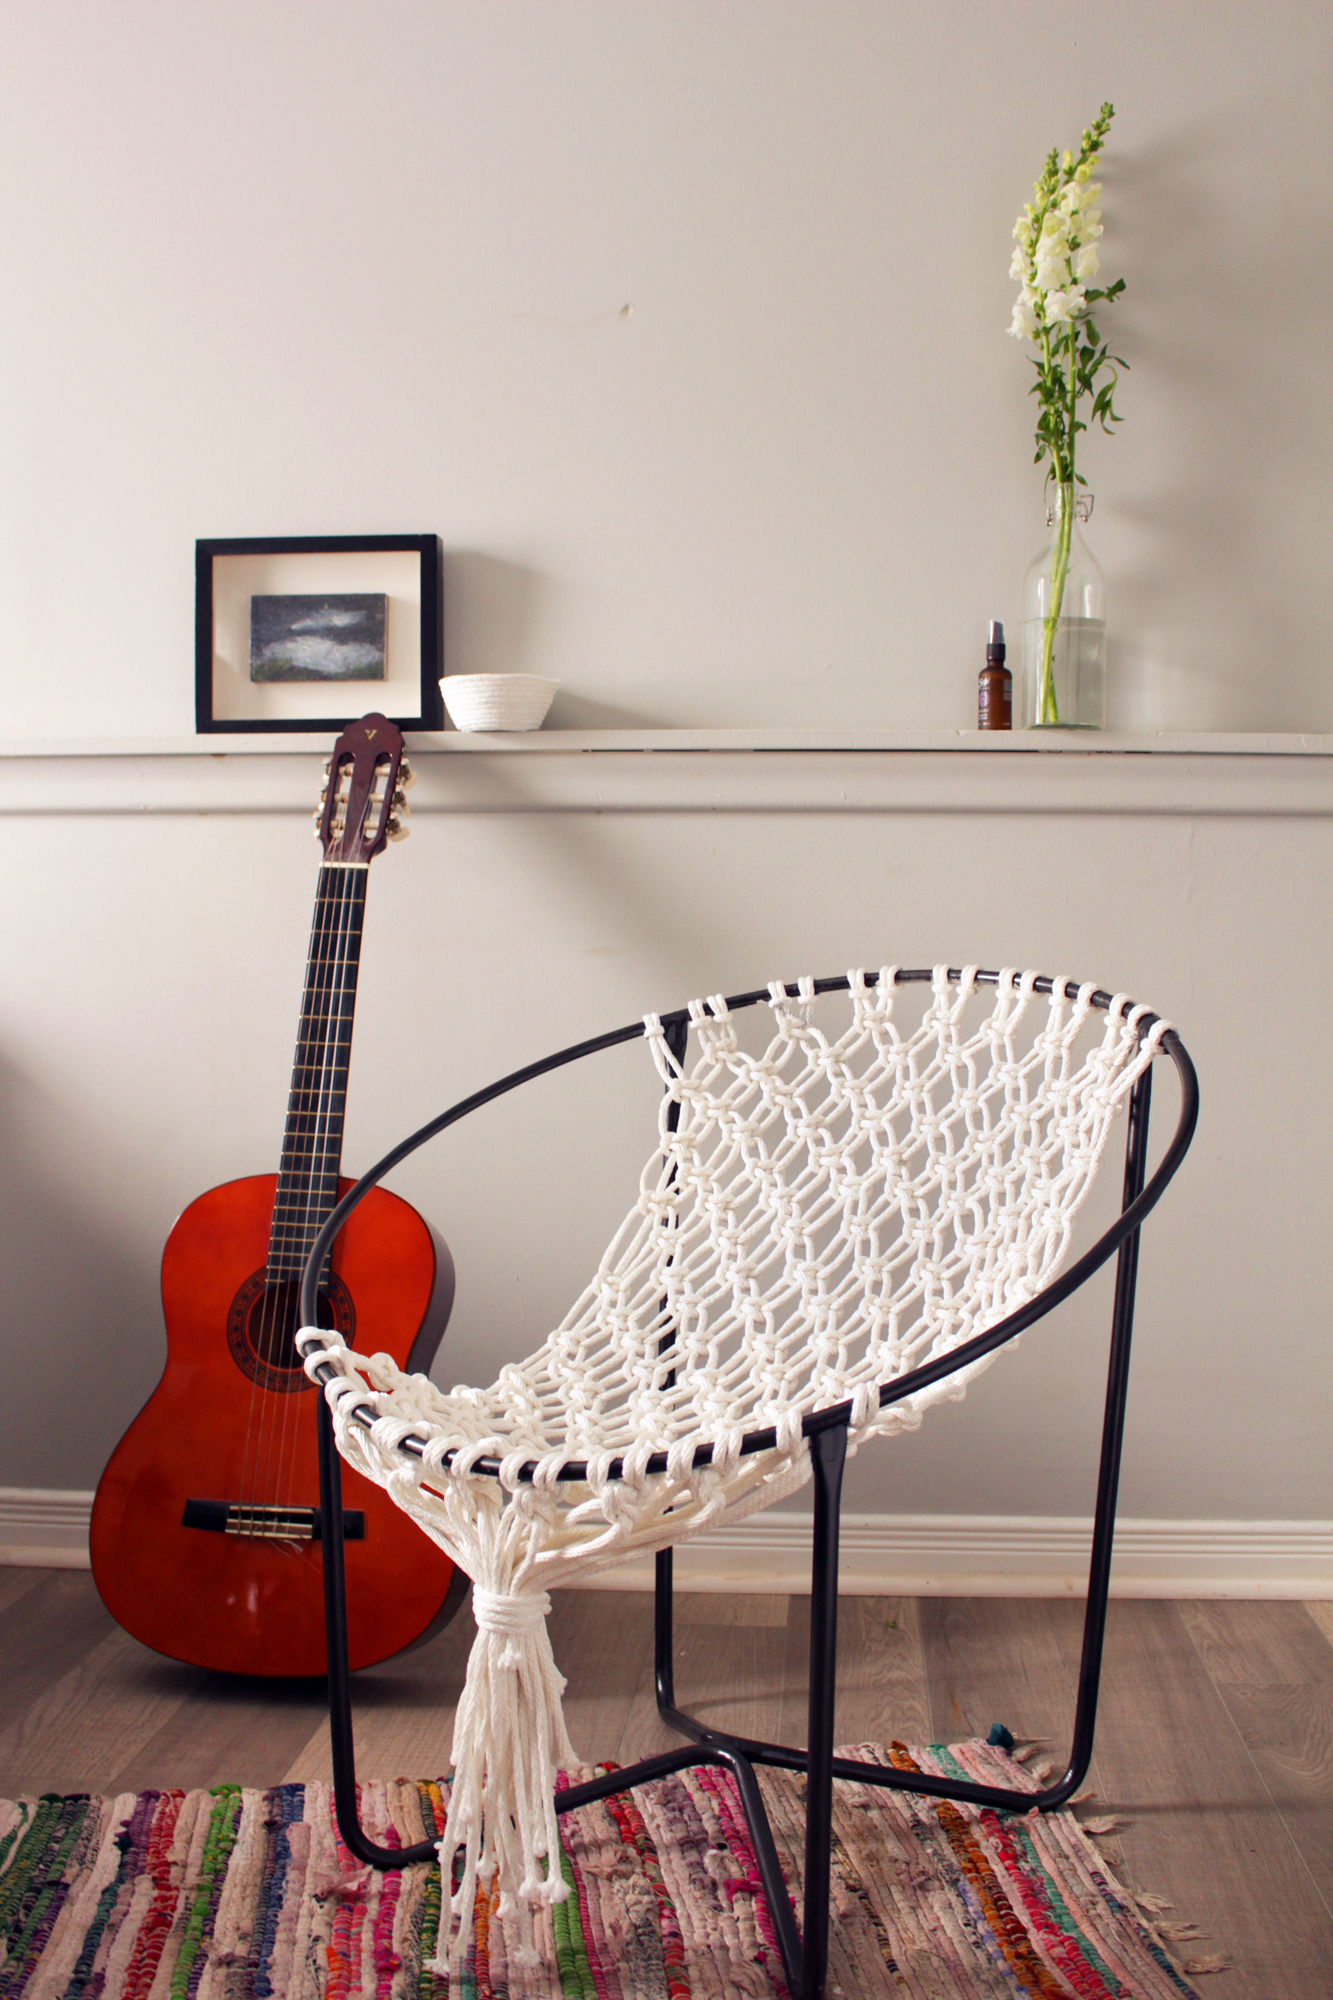 Diy macrame hammock chair chairrepurposed hammockchair hammock